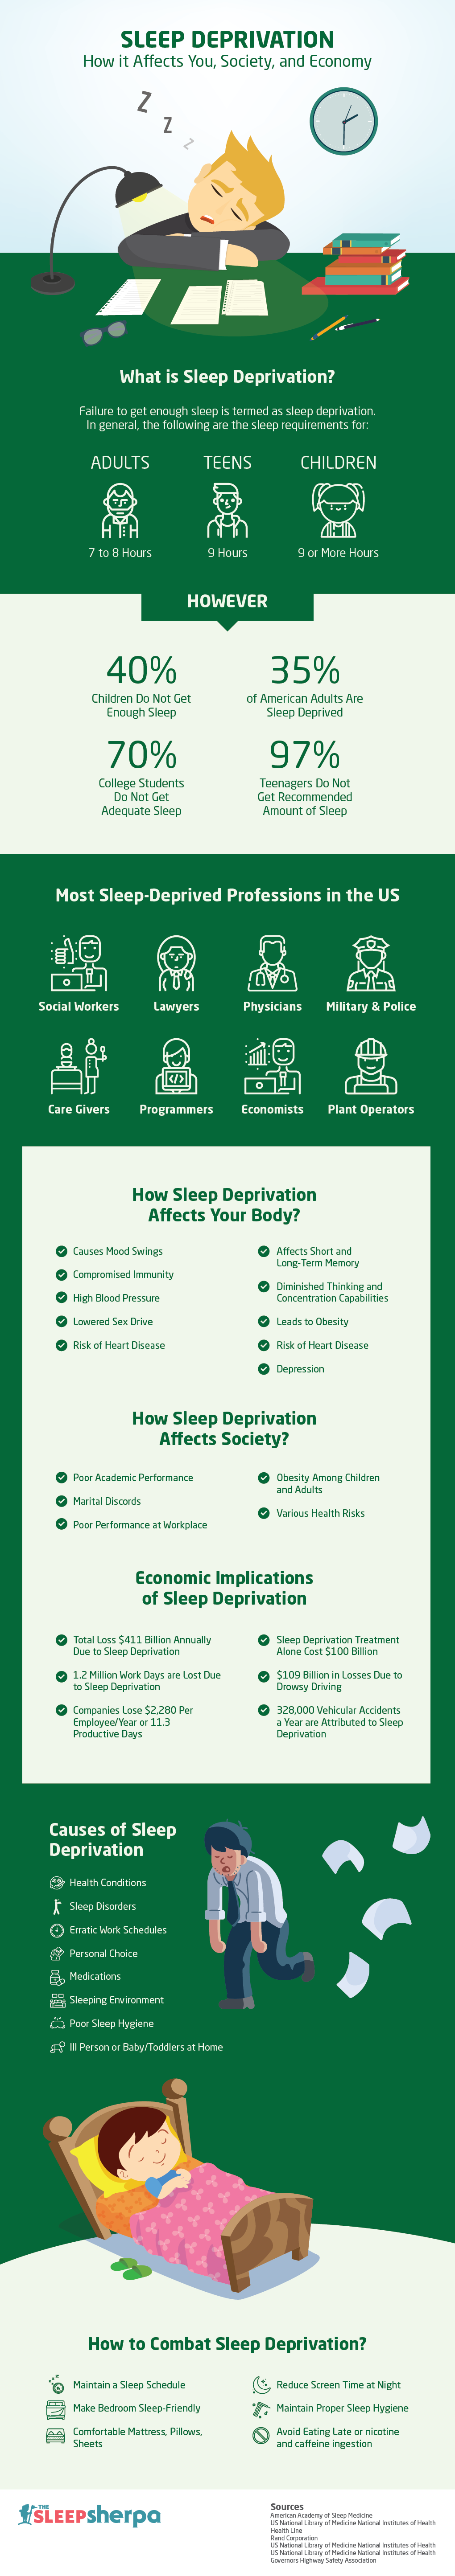 Sleep Deprivation – How It Affects You, Society, and Economy